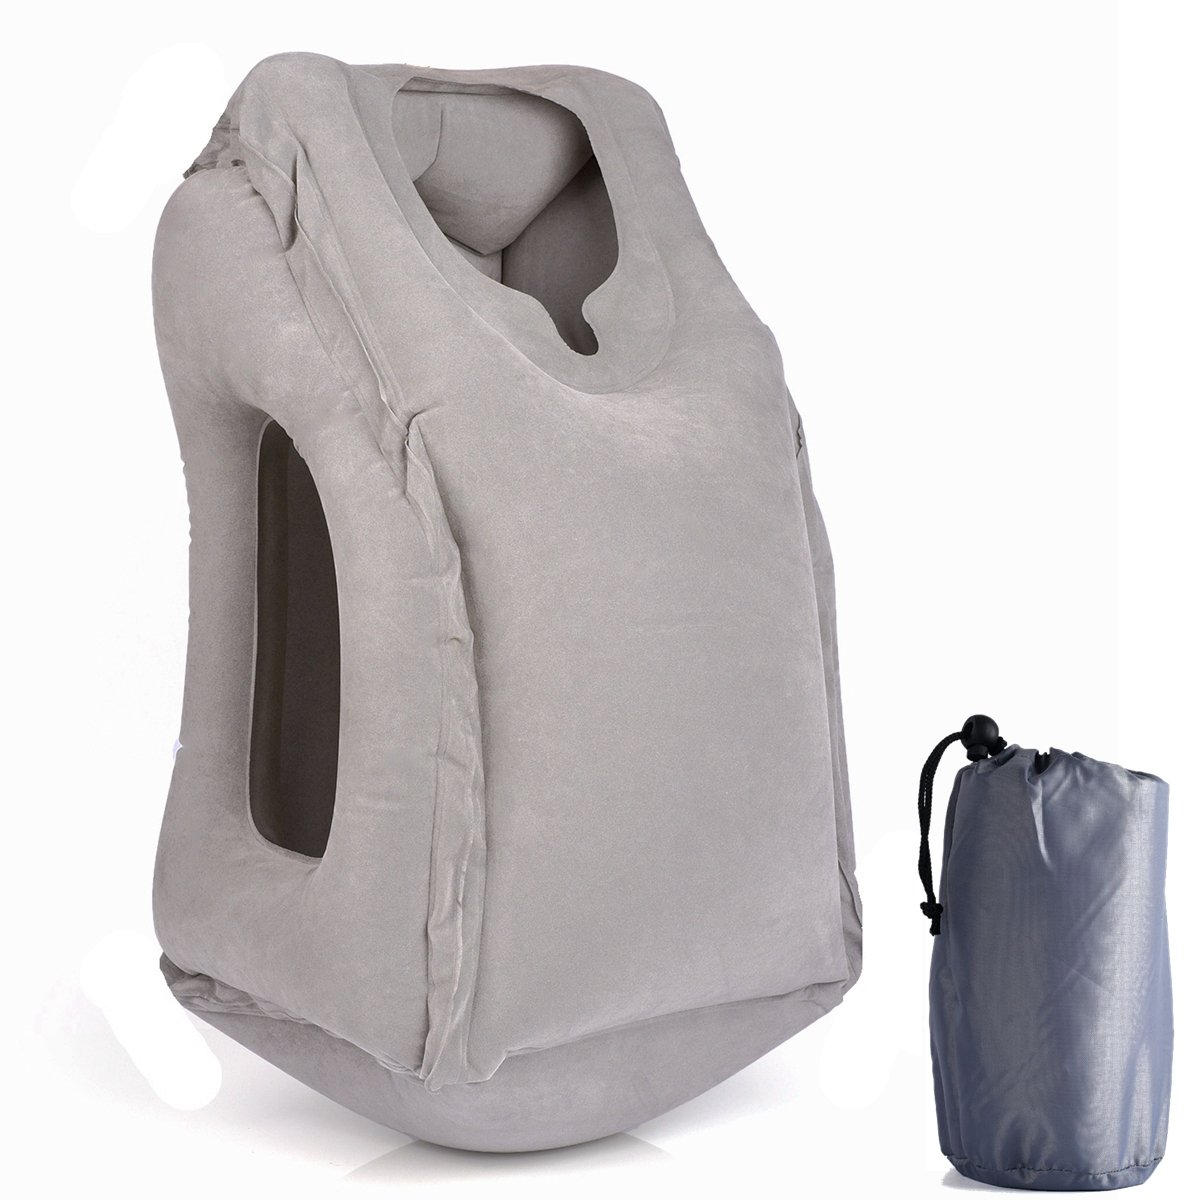 BEAUTRIP Innovative Inflatable Cushion Travel Pillows, Neck Head Chin Support Travel Body Nap Pillow Cushions for Airplane/Car/Bus/Train/Office/School